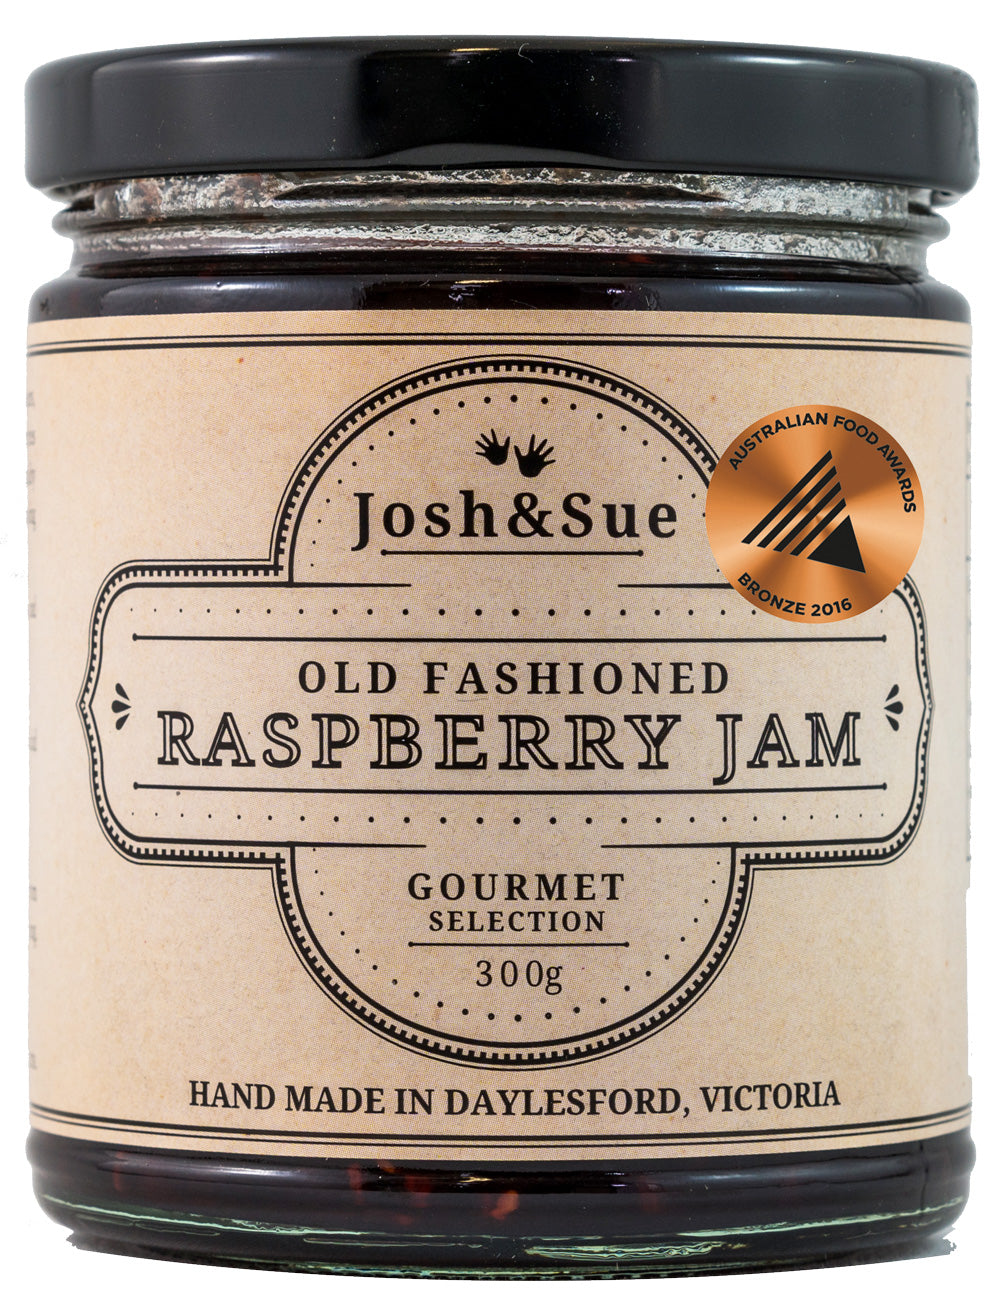 Josh & Sue Old Fashioned Rasberry Jam